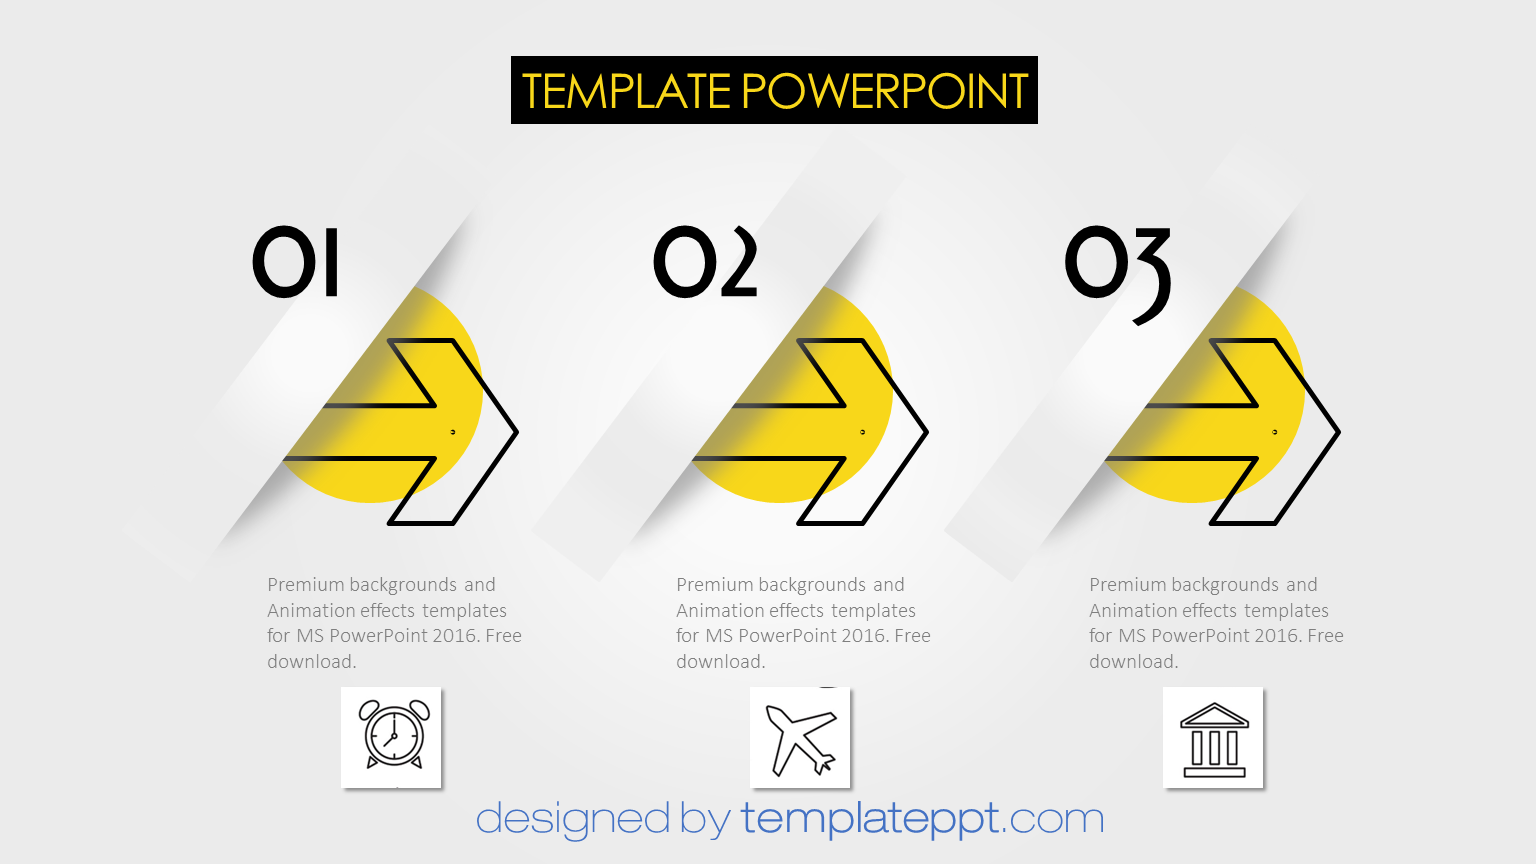 Animated png for ppt free download transparent animated for ppt powerpoint templates free download 2016 animated png for ppt free download toneelgroepblik Gallery